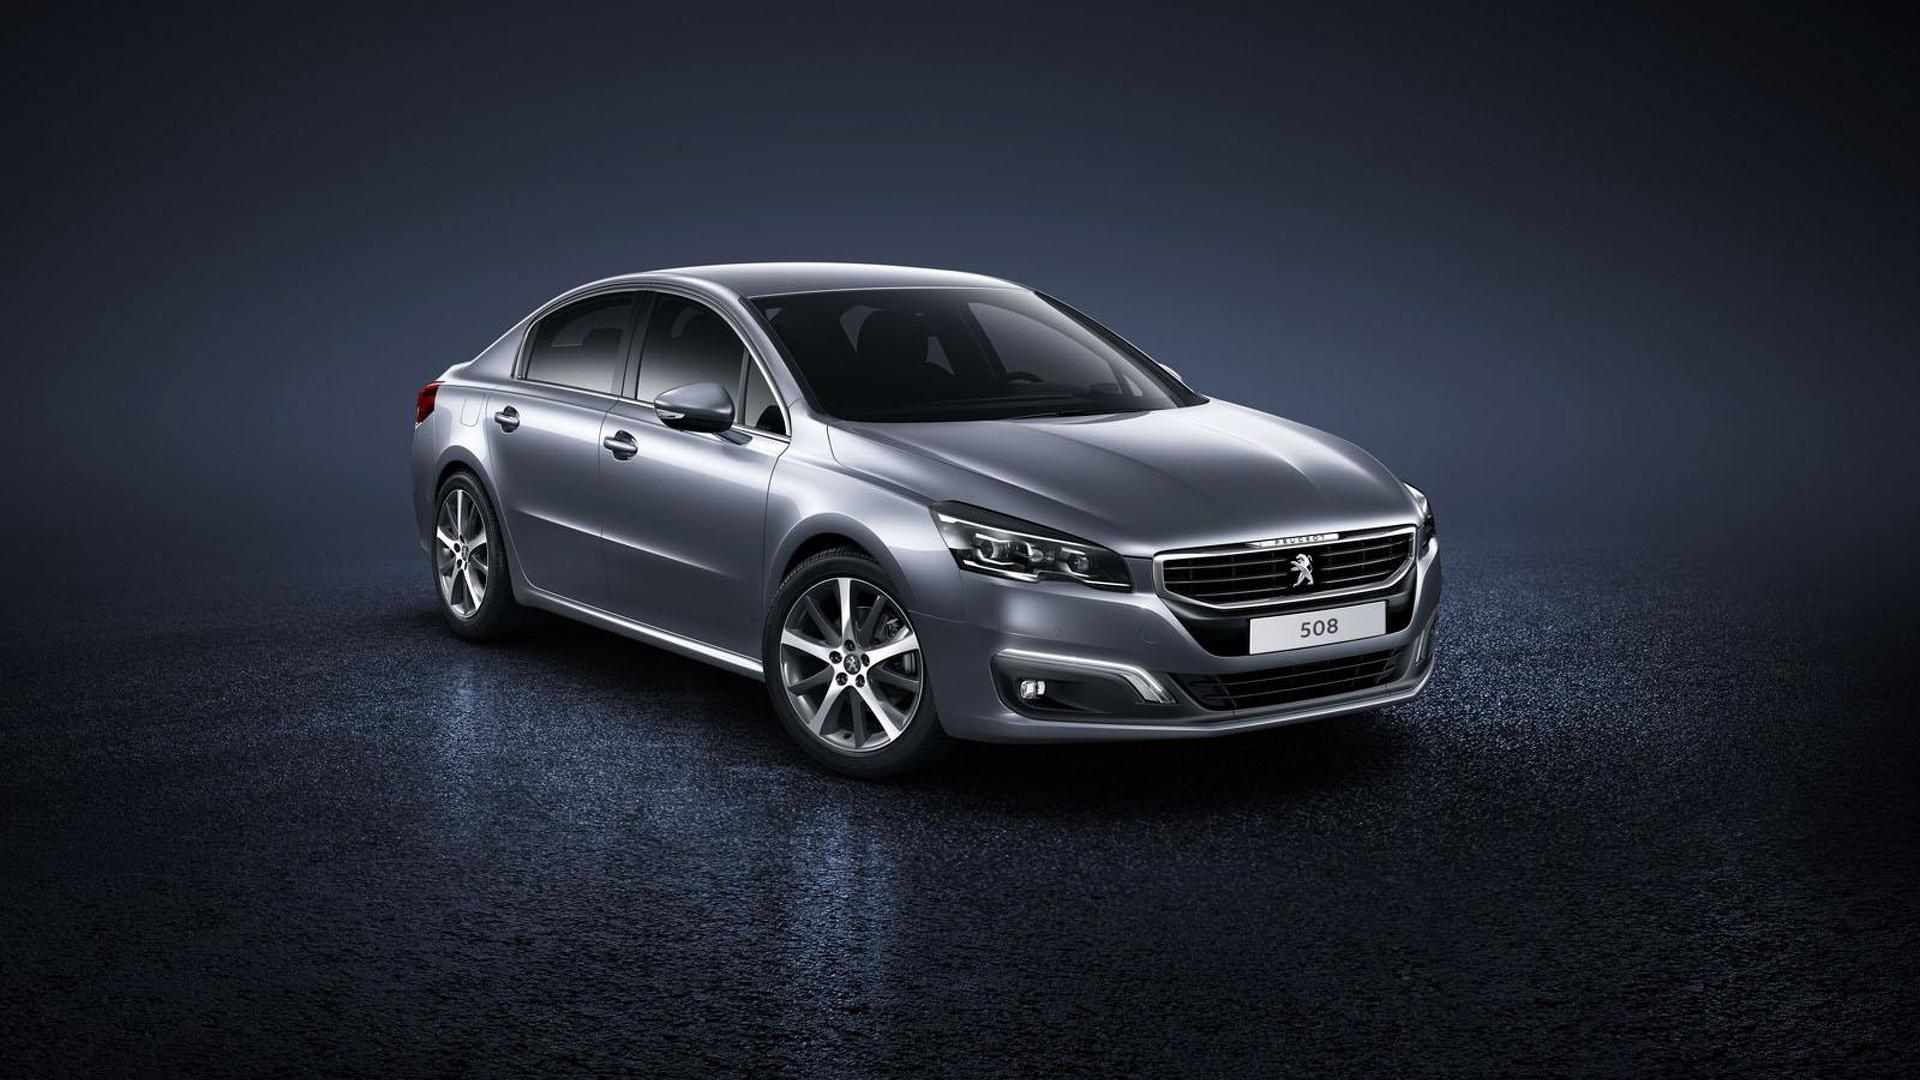 Next generation Peugeot 508 getting self-driving technology